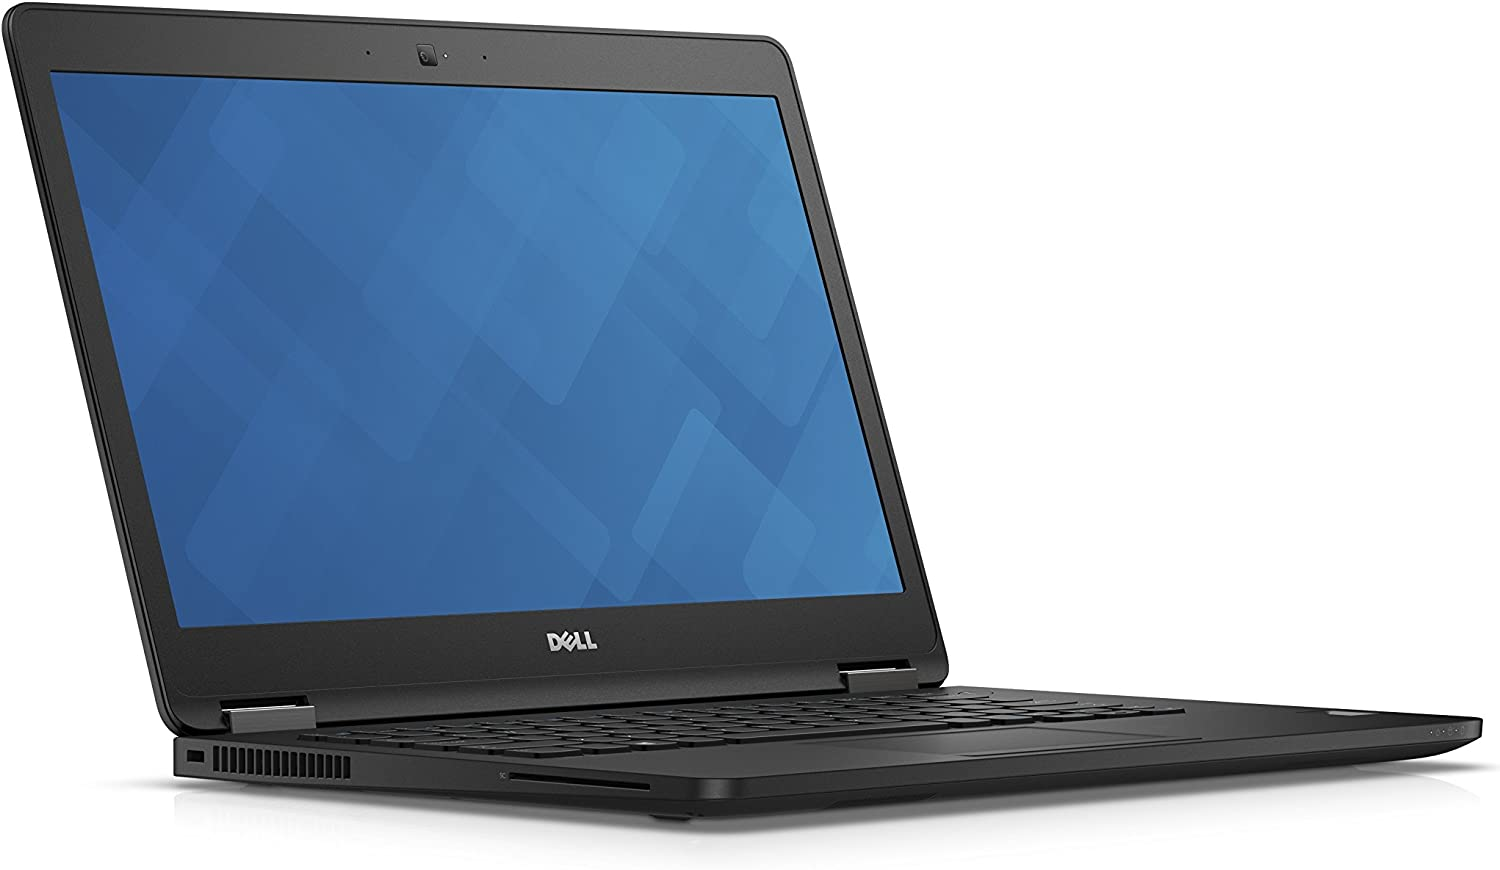 "Dell Latitude E7470 Business Laptop - THTW7 (14"" FHD Laptop (Intel Core i7-6600U 2.6GHZ, 8GB DDR4, 256GB Solid State Drive, Windows 7/10 Pro)"